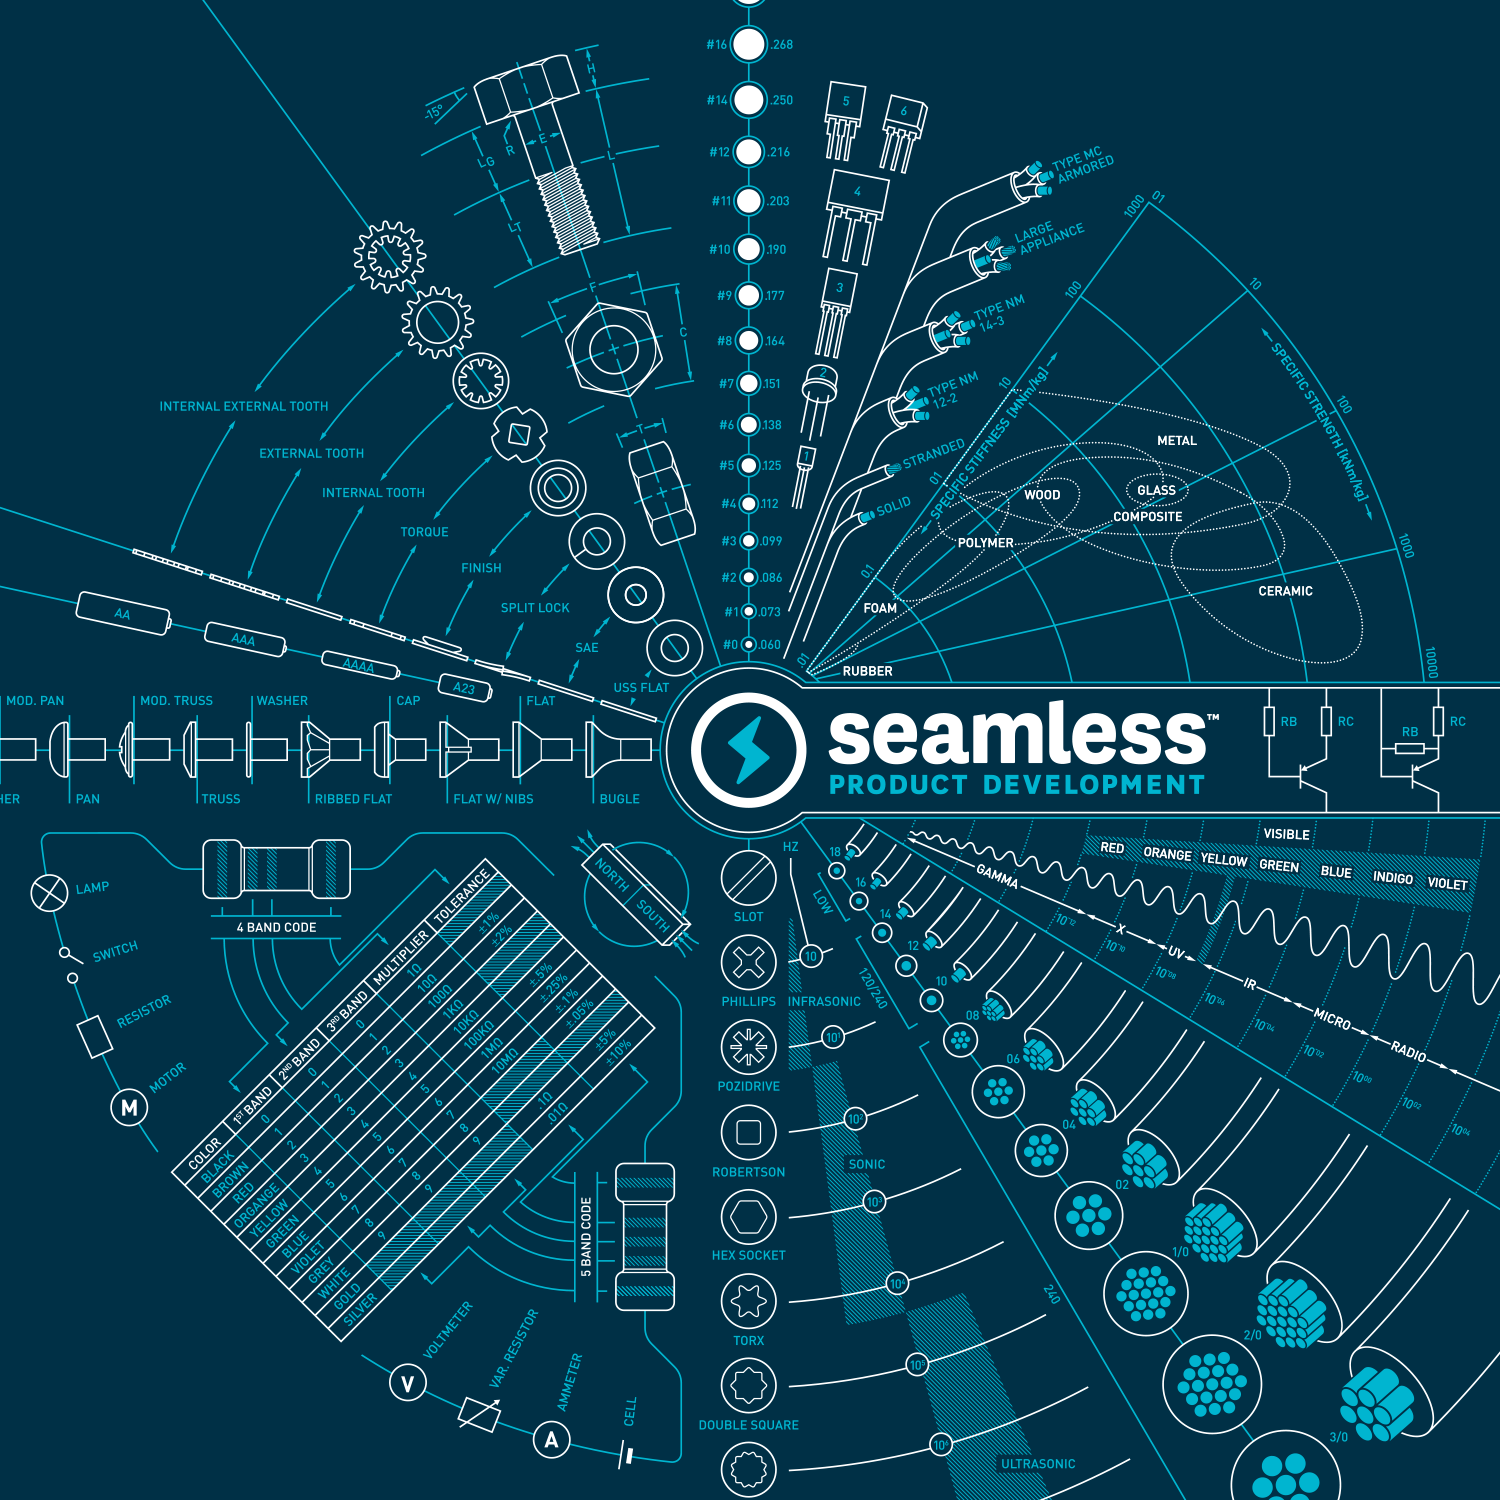 illustration for Seamless Product Development featuring a variety of engineering and technological references